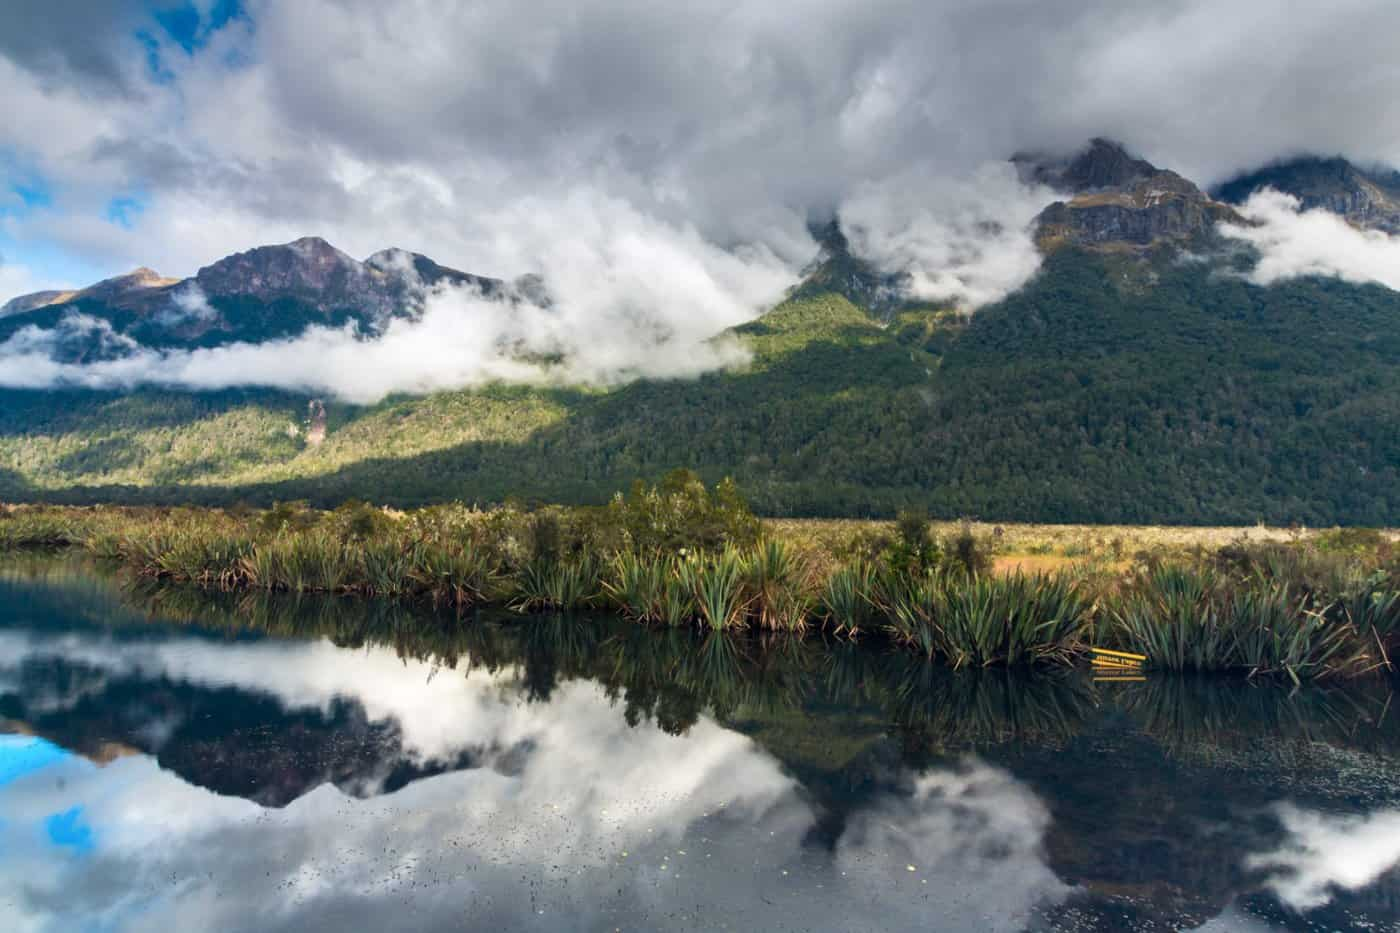 The Mirror Lakes greet you at the doorstep of Fjordland National Park.